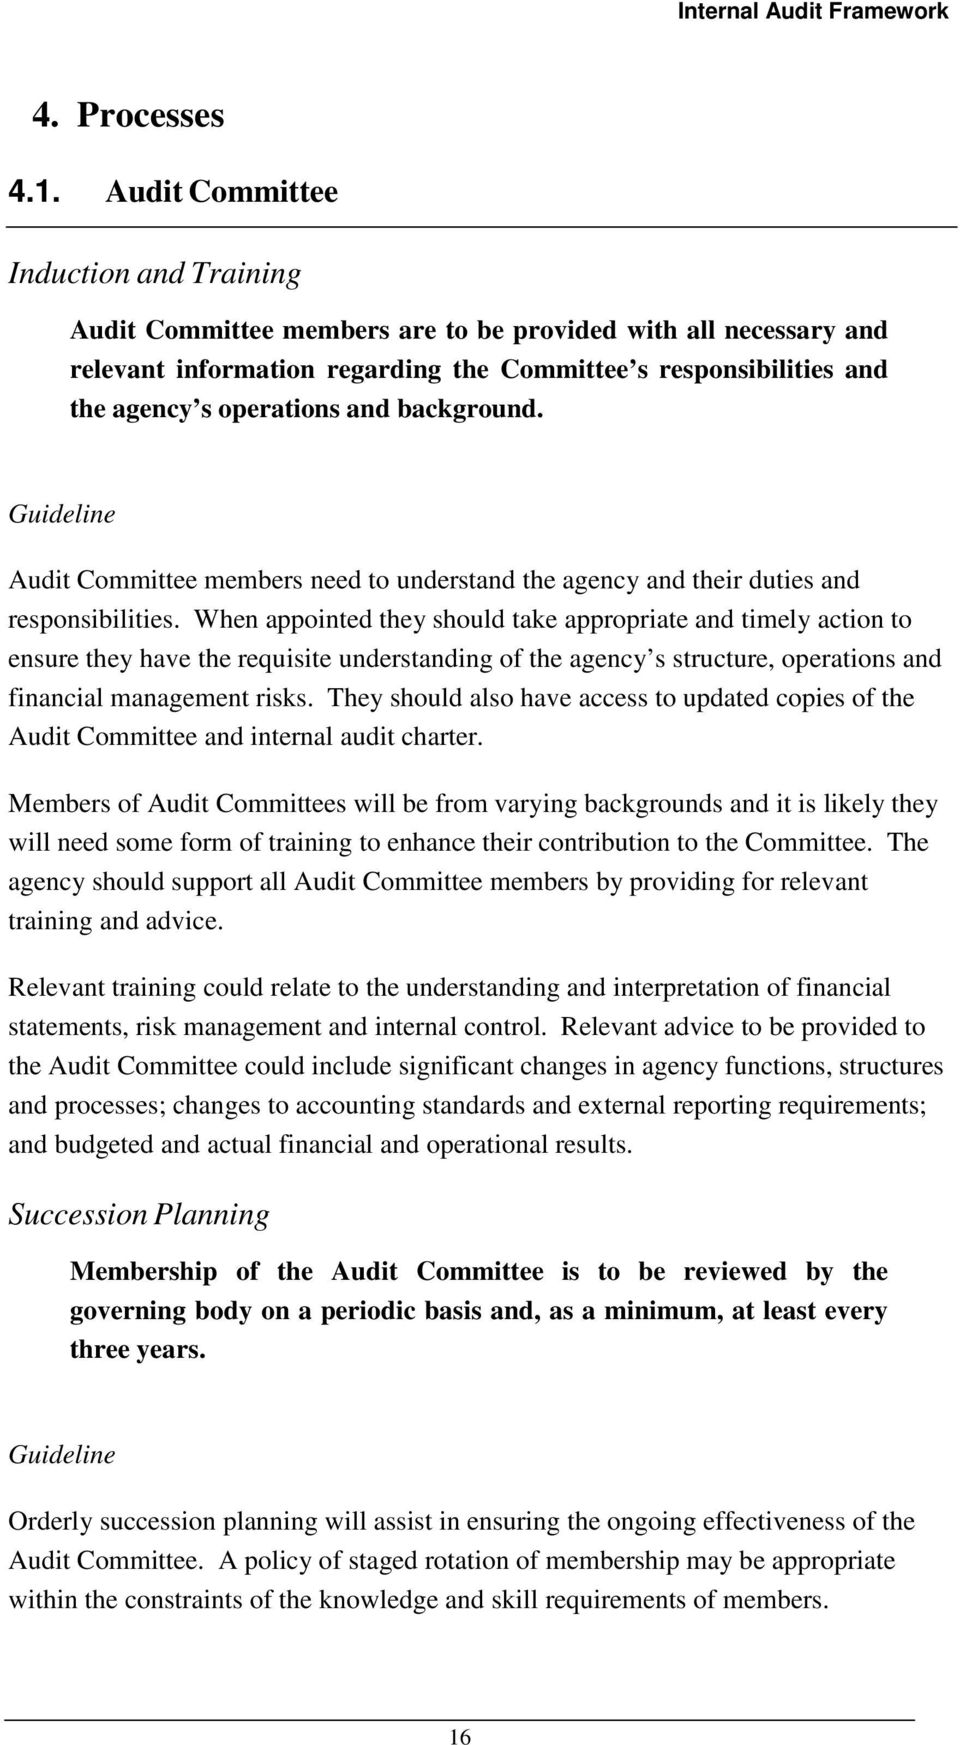 and background. Audit Committee members need to understand the agency and their duties and responsibilities.